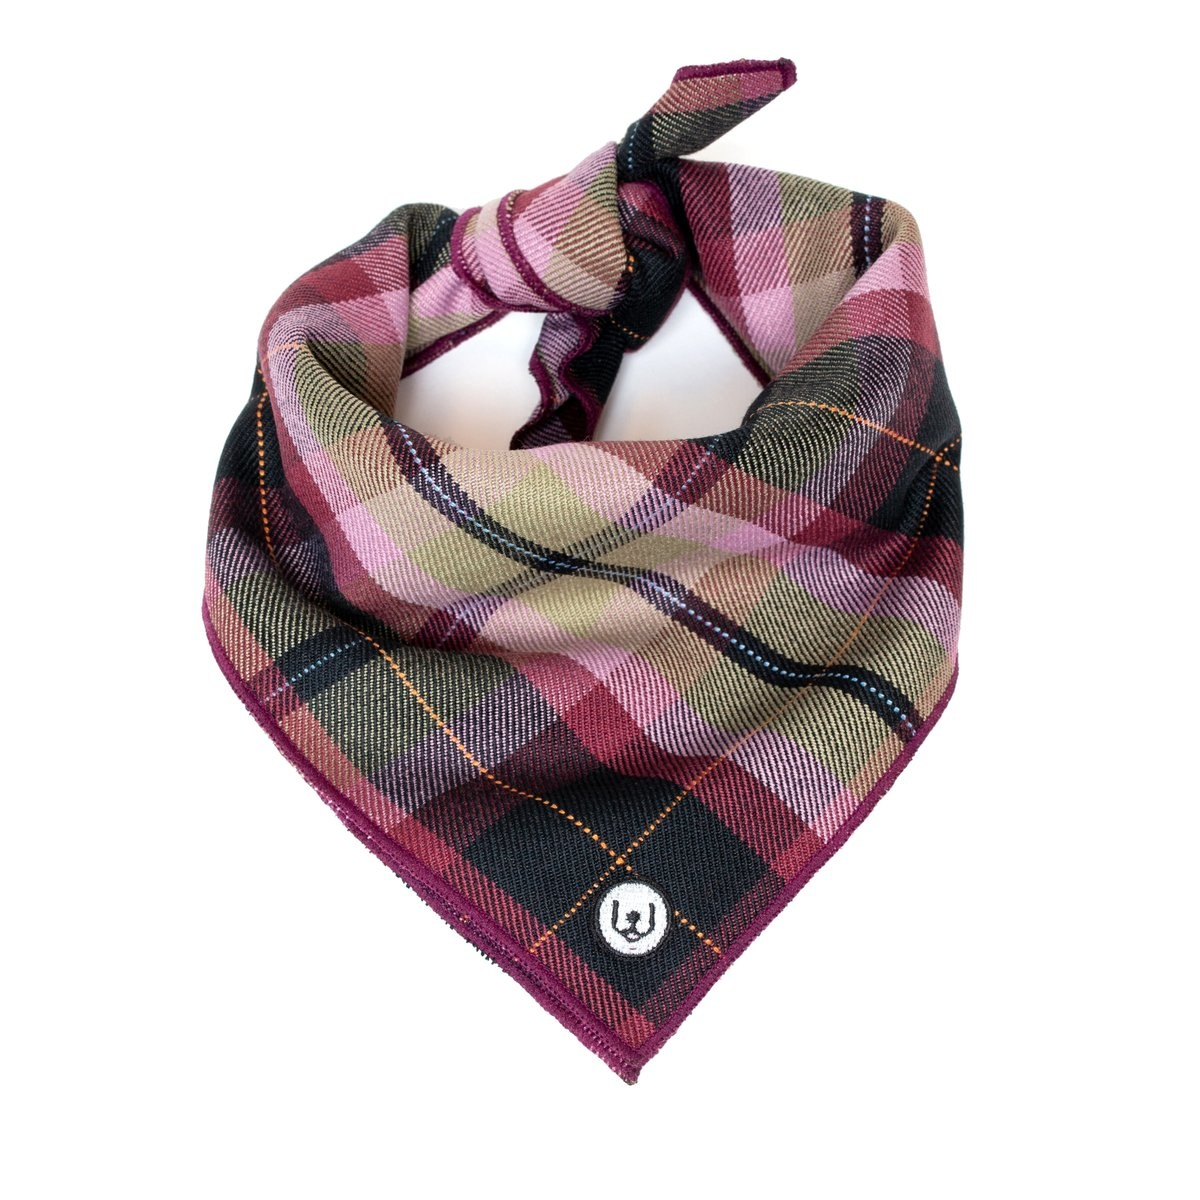 Eat Play Wag Eat Play Wag - Plum Plaid Neckerchief